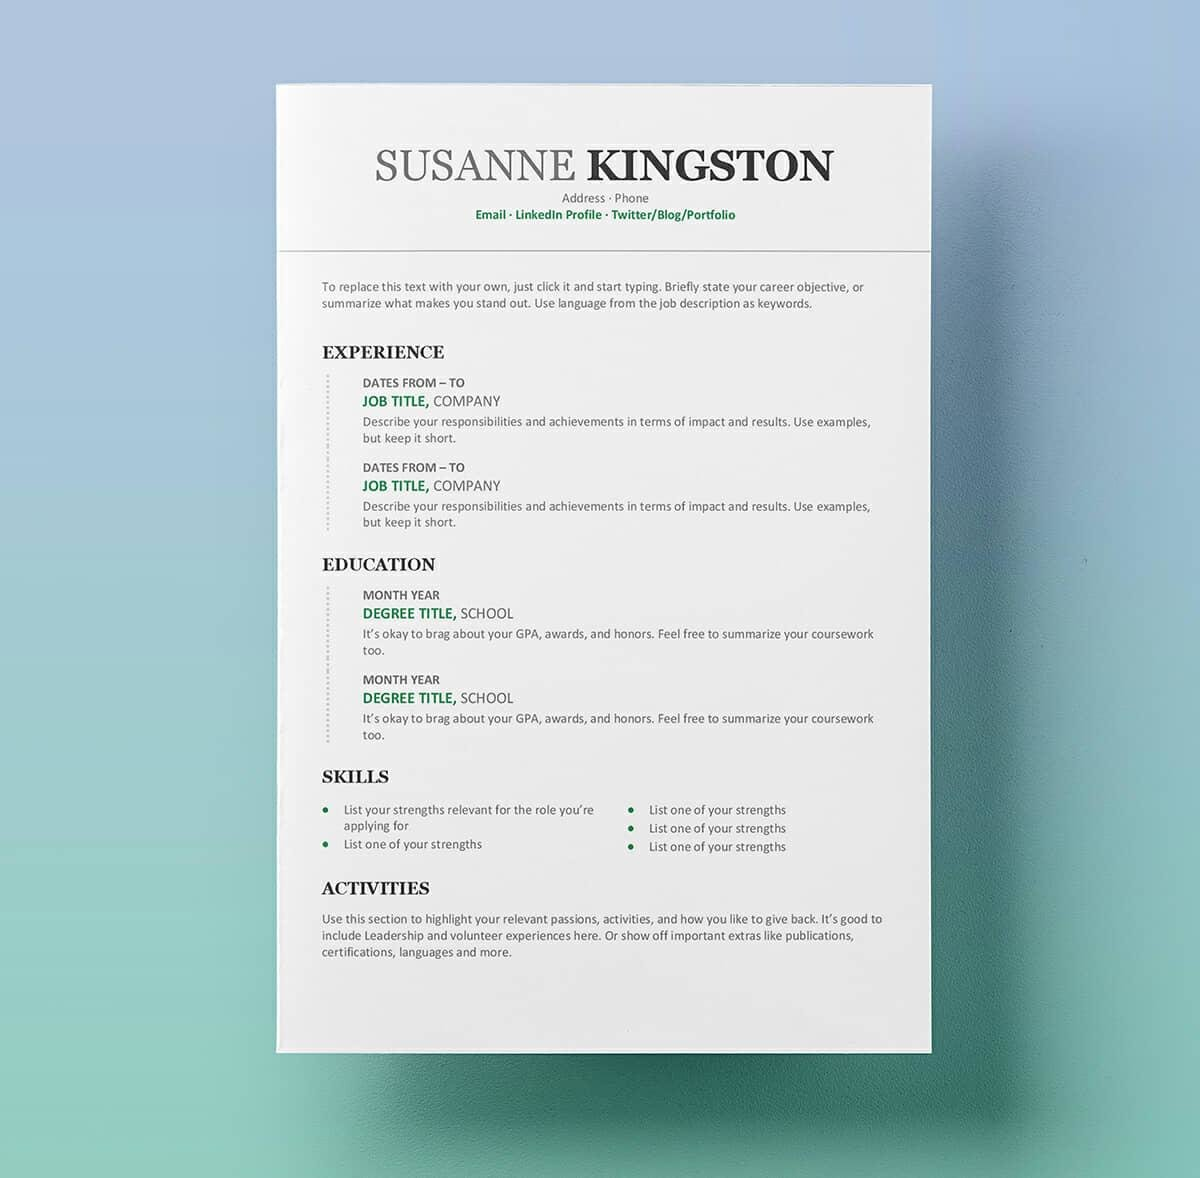 Captivating Resume Templates For Word (FREE): 15+ Examples For Download